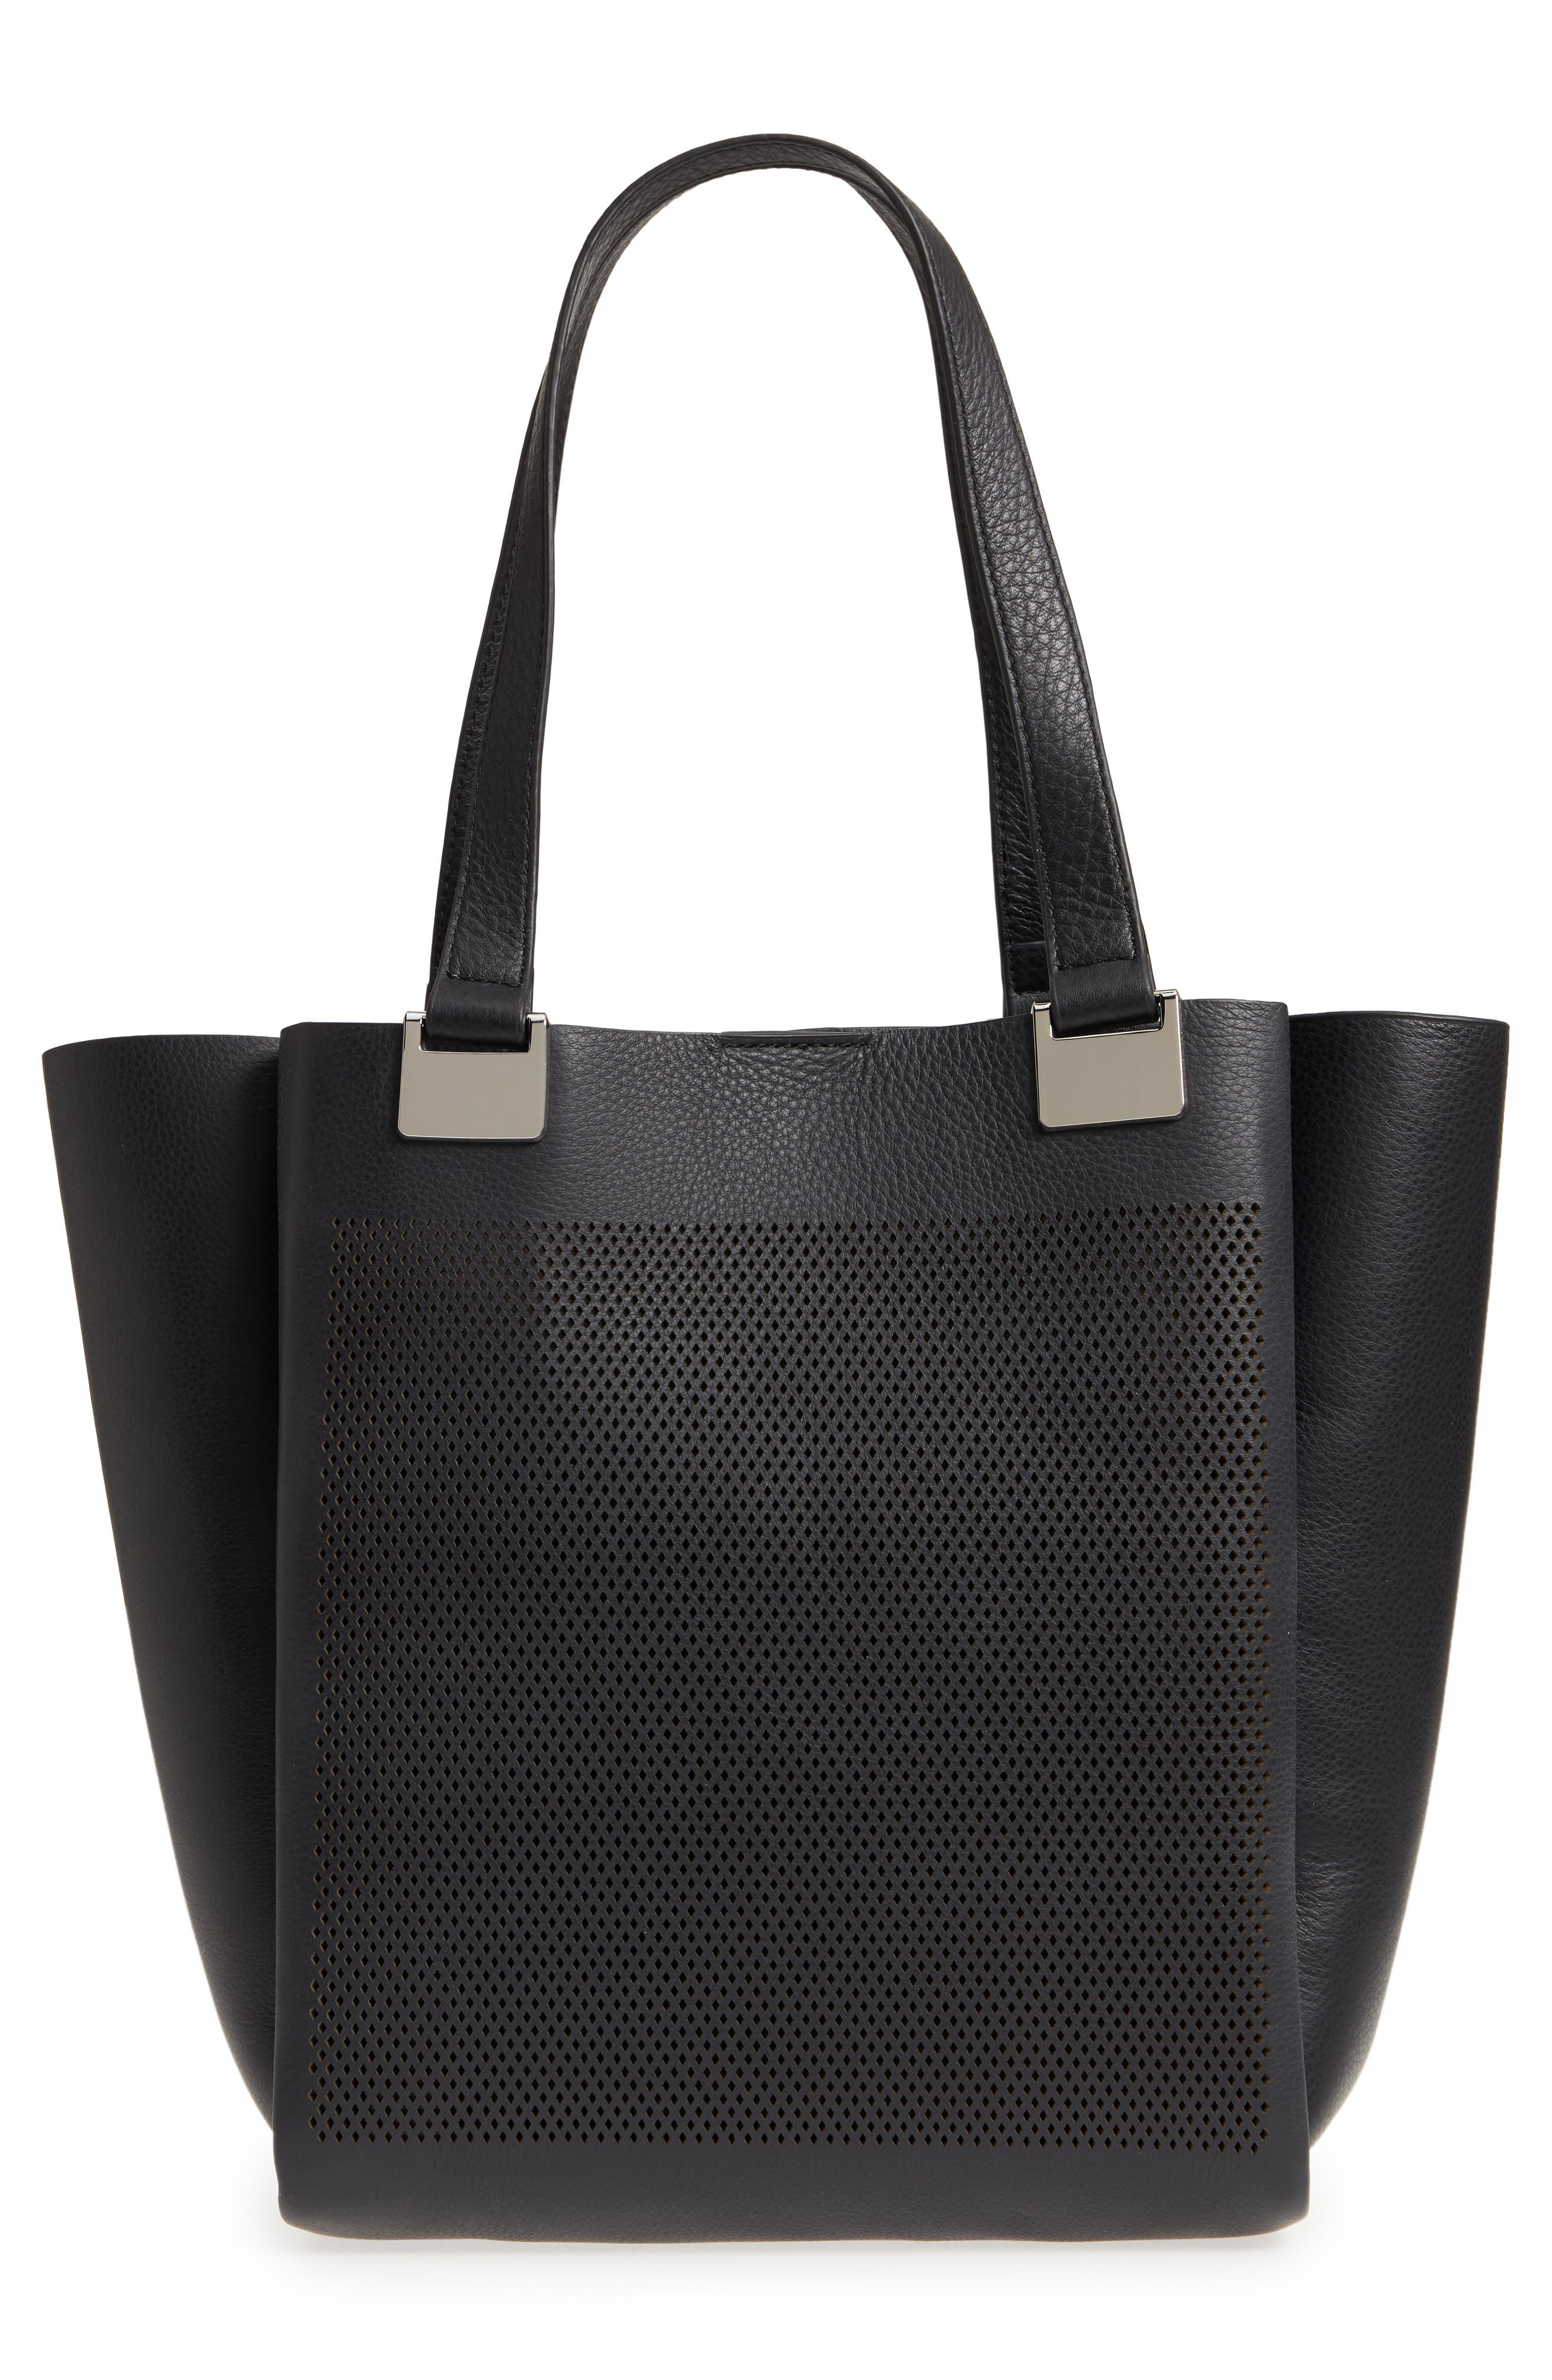 Beatt Perforated Leather Tote,                             Alternate thumbnail 3, color,                             001